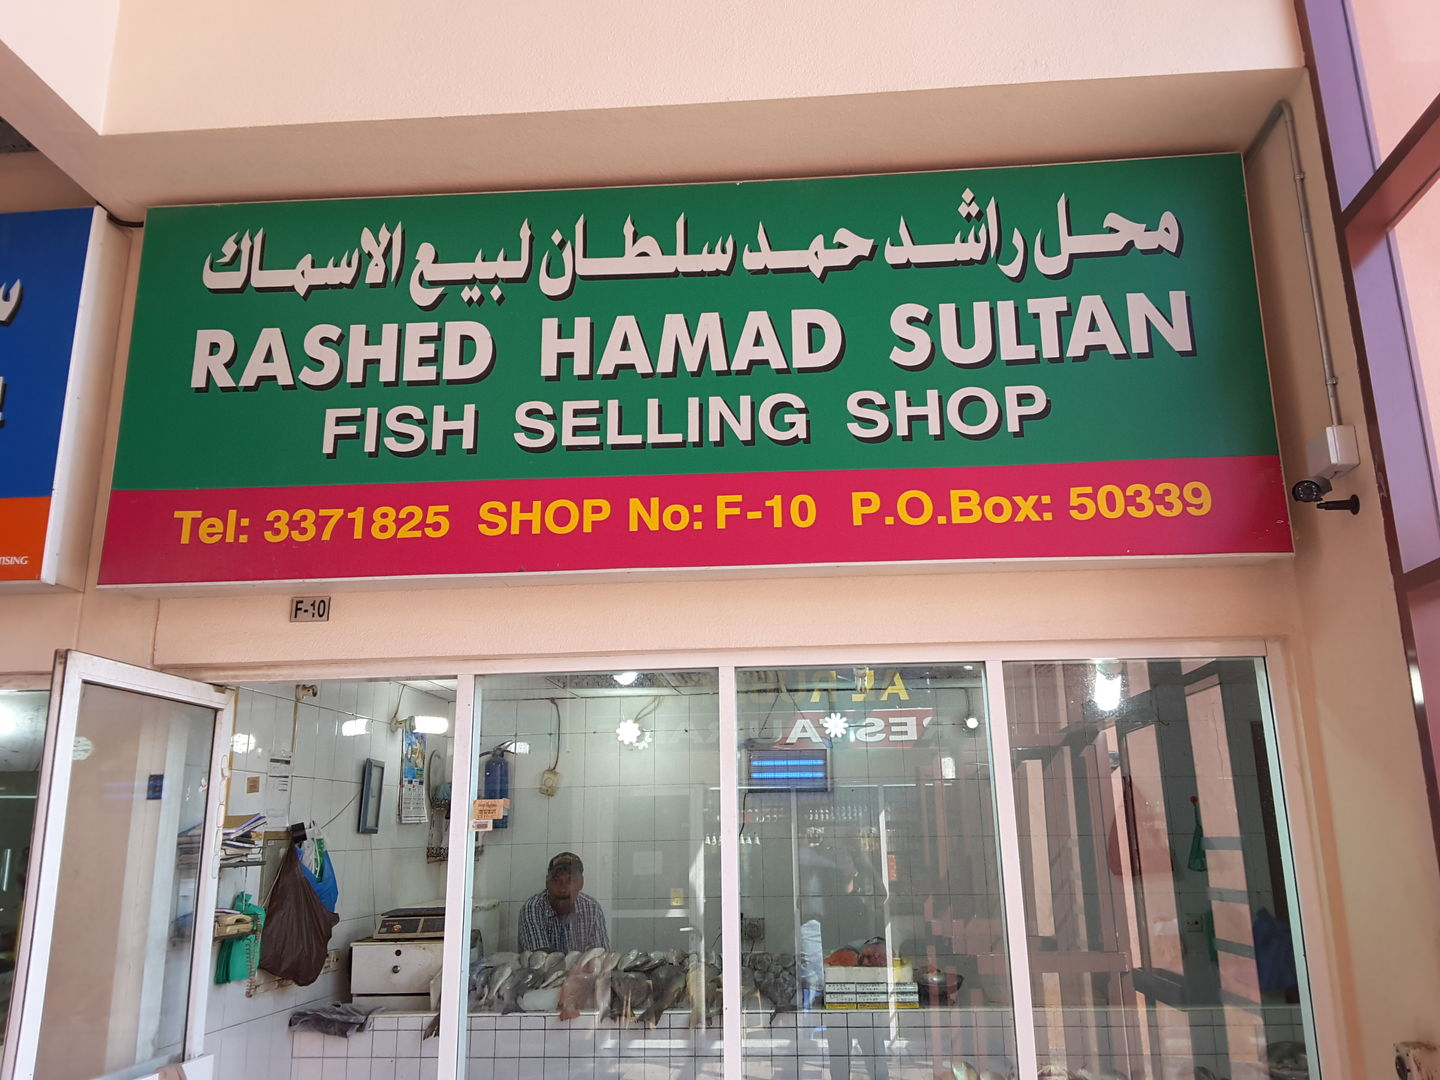 HiDubai-business-rashed-hamad-sultan-fish-selling-shop-shopping-supermarkets-hypermarkets-grocery-stores-al-karama-dubai-2